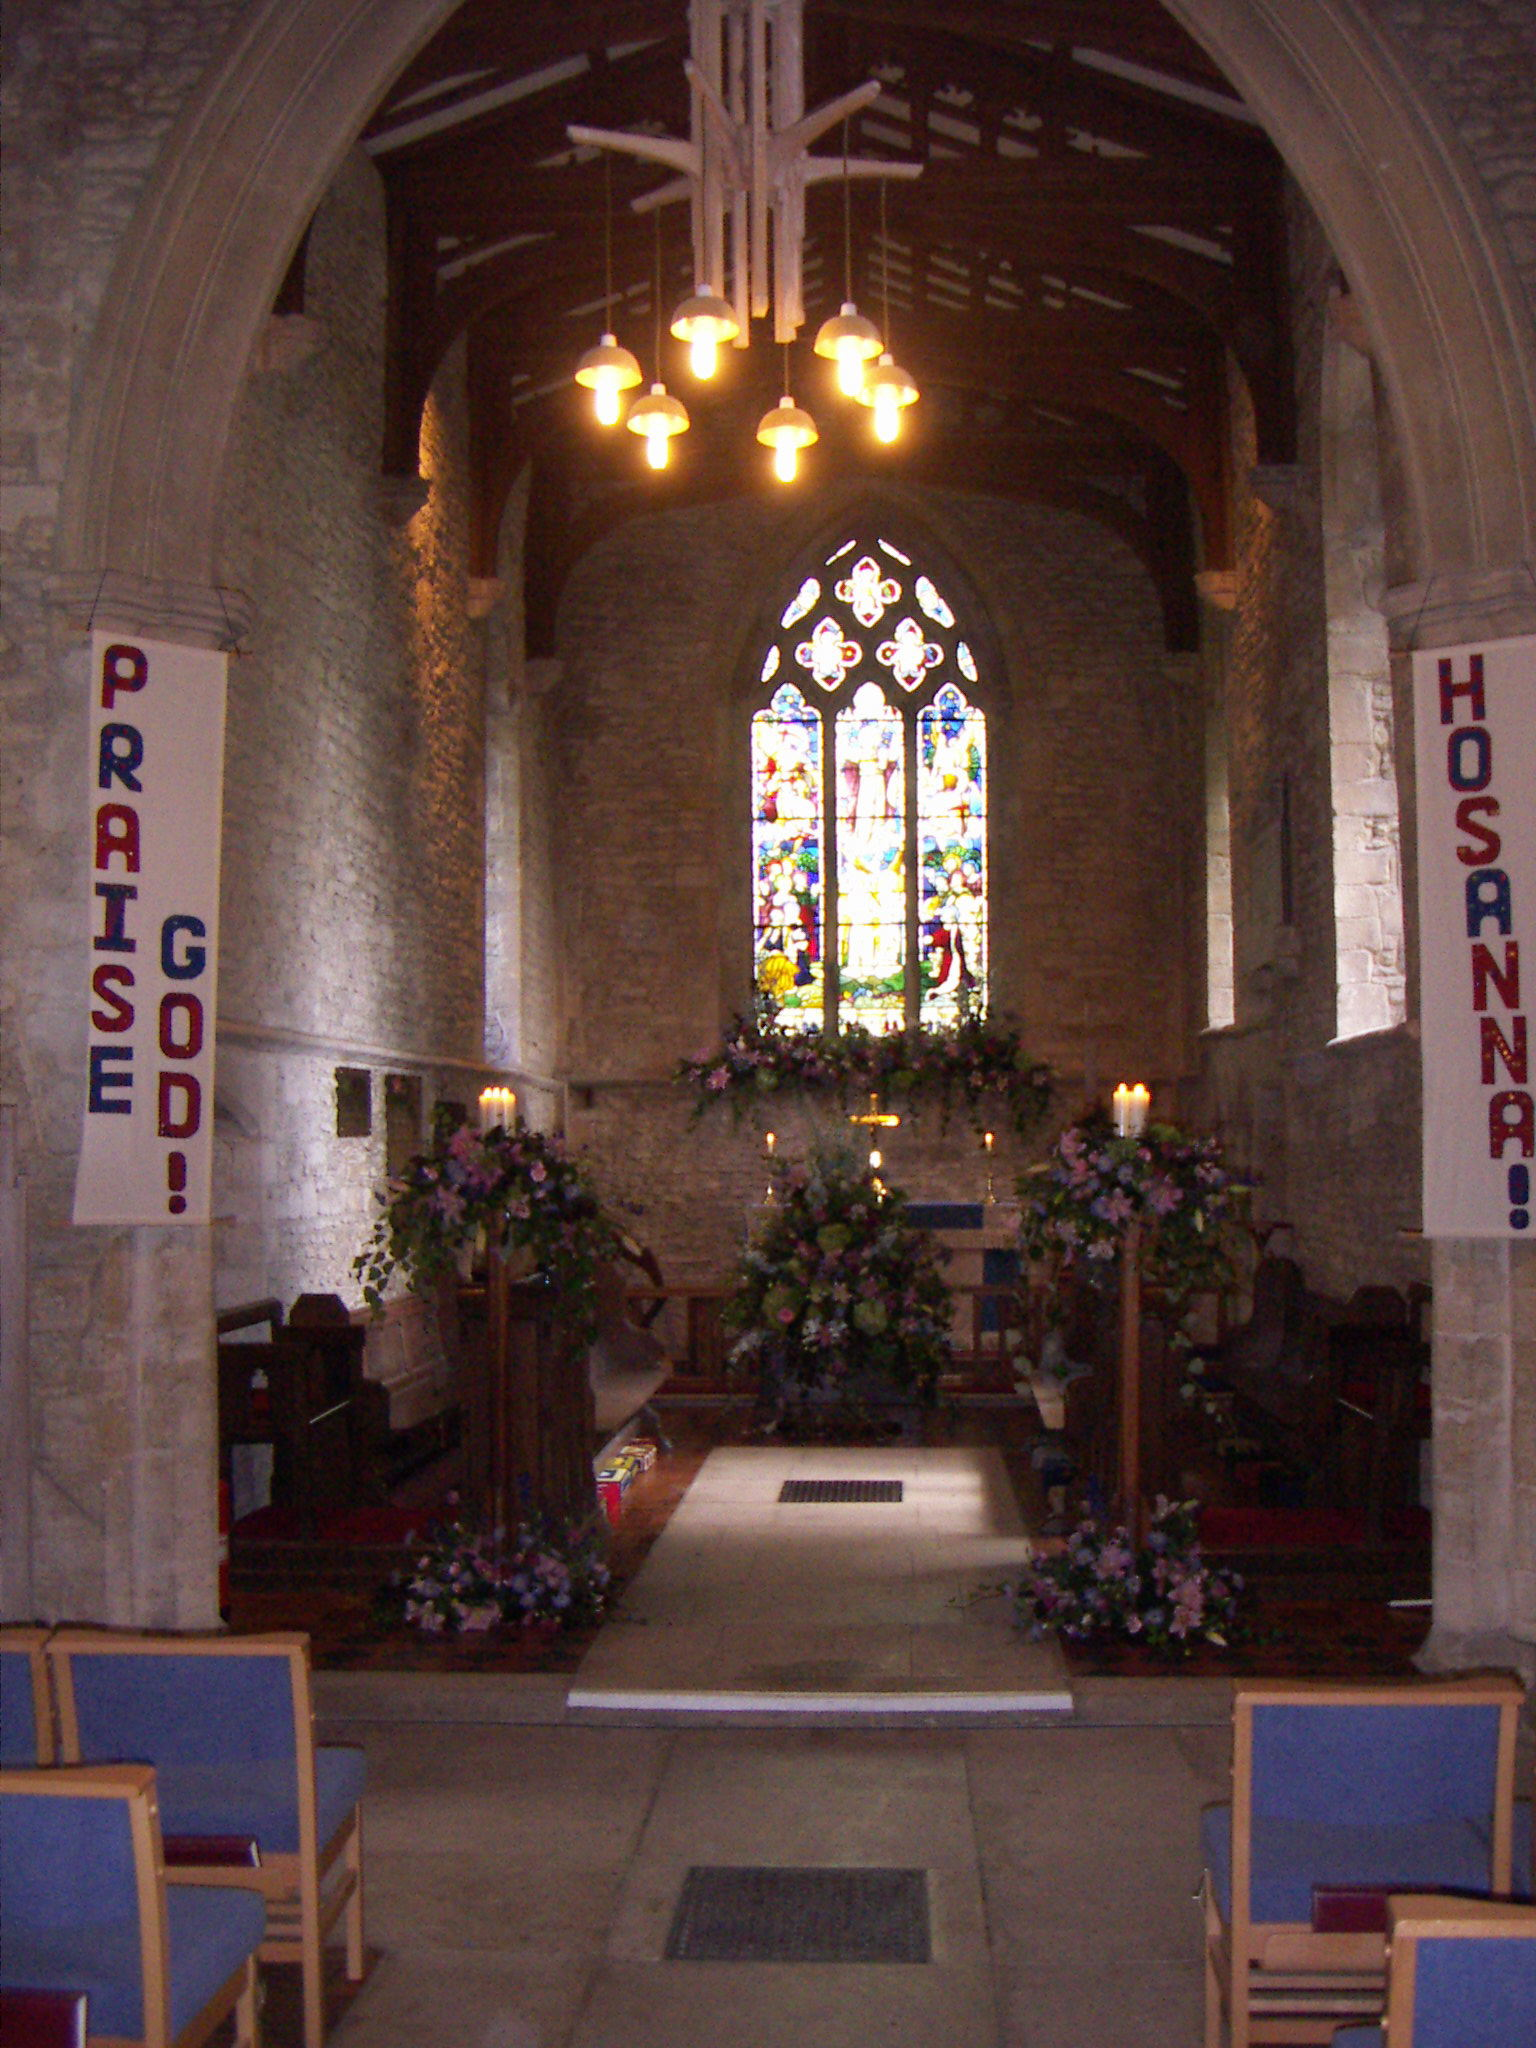 Inside St. Andrews